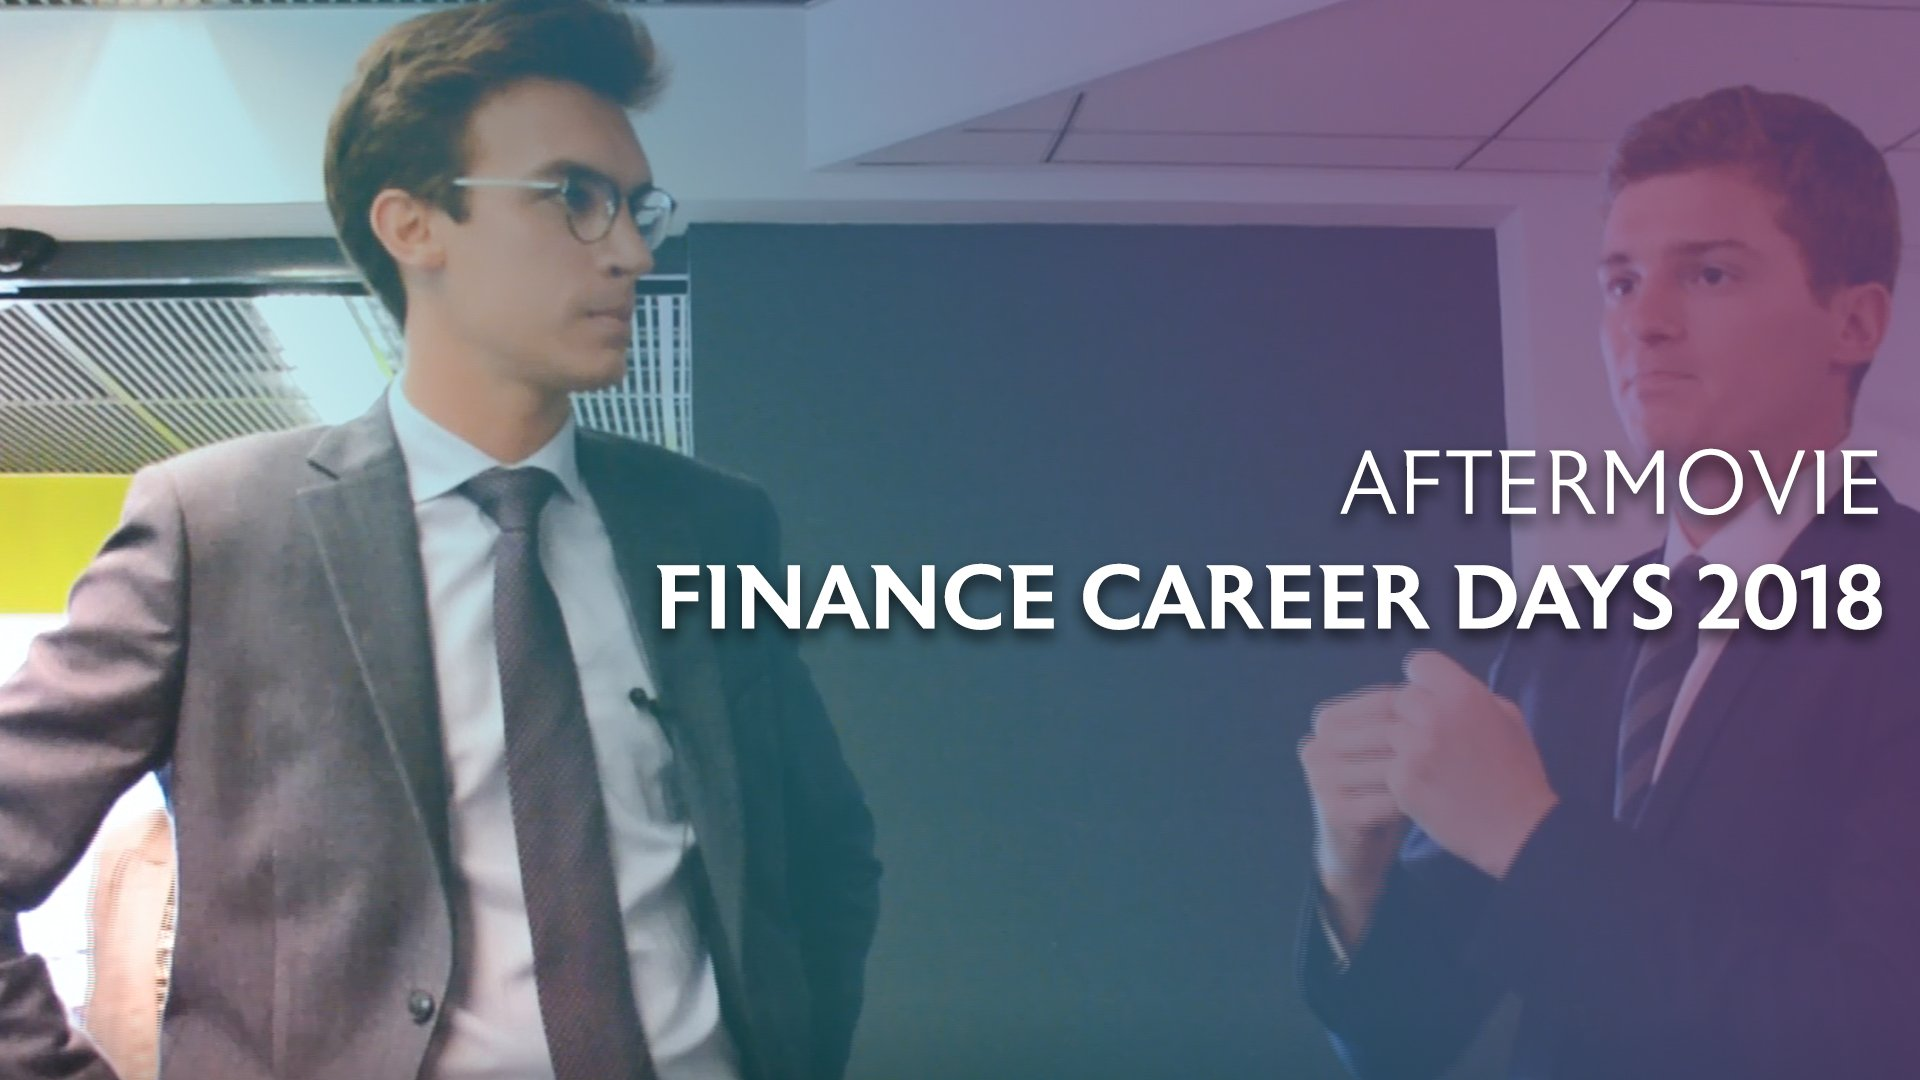 Finance Career Days | EDHEC Careers